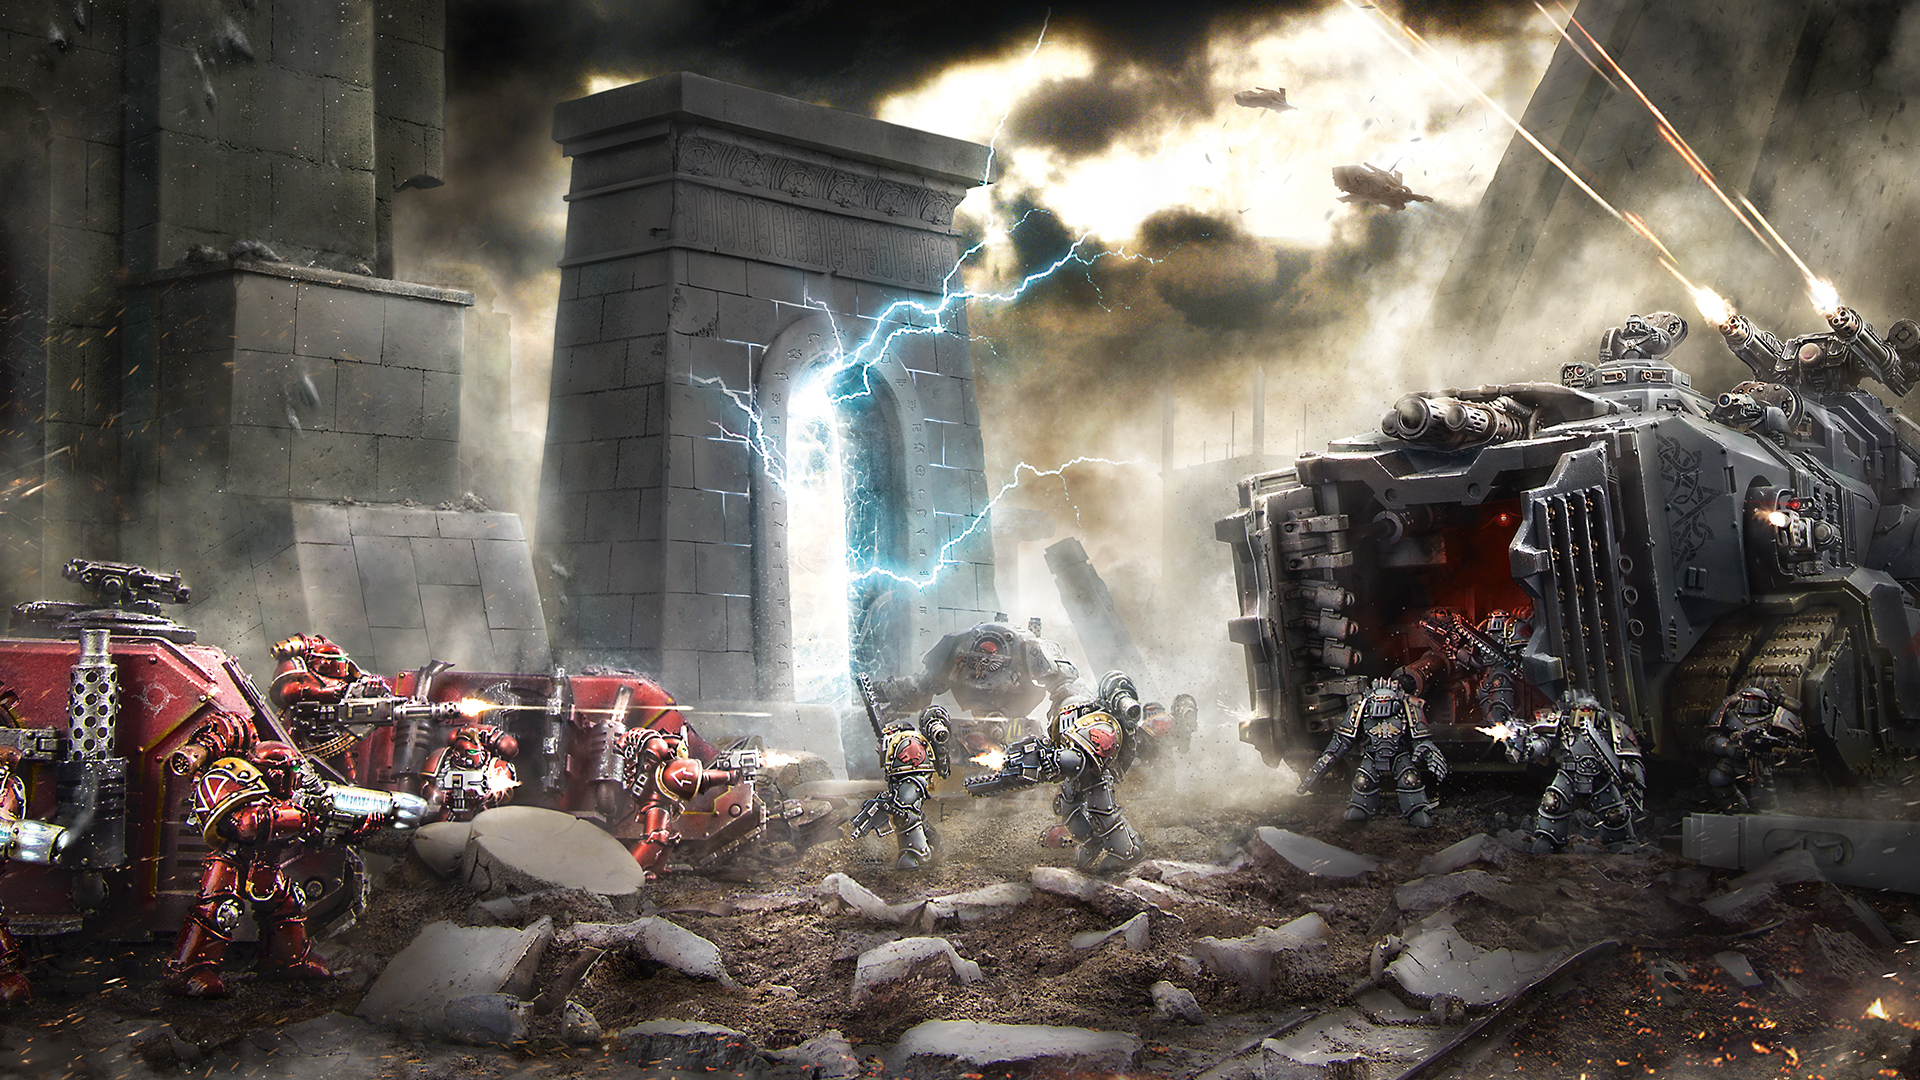 FW: Horus Heresy Rulebook Delayed - Bell of Lost Souls